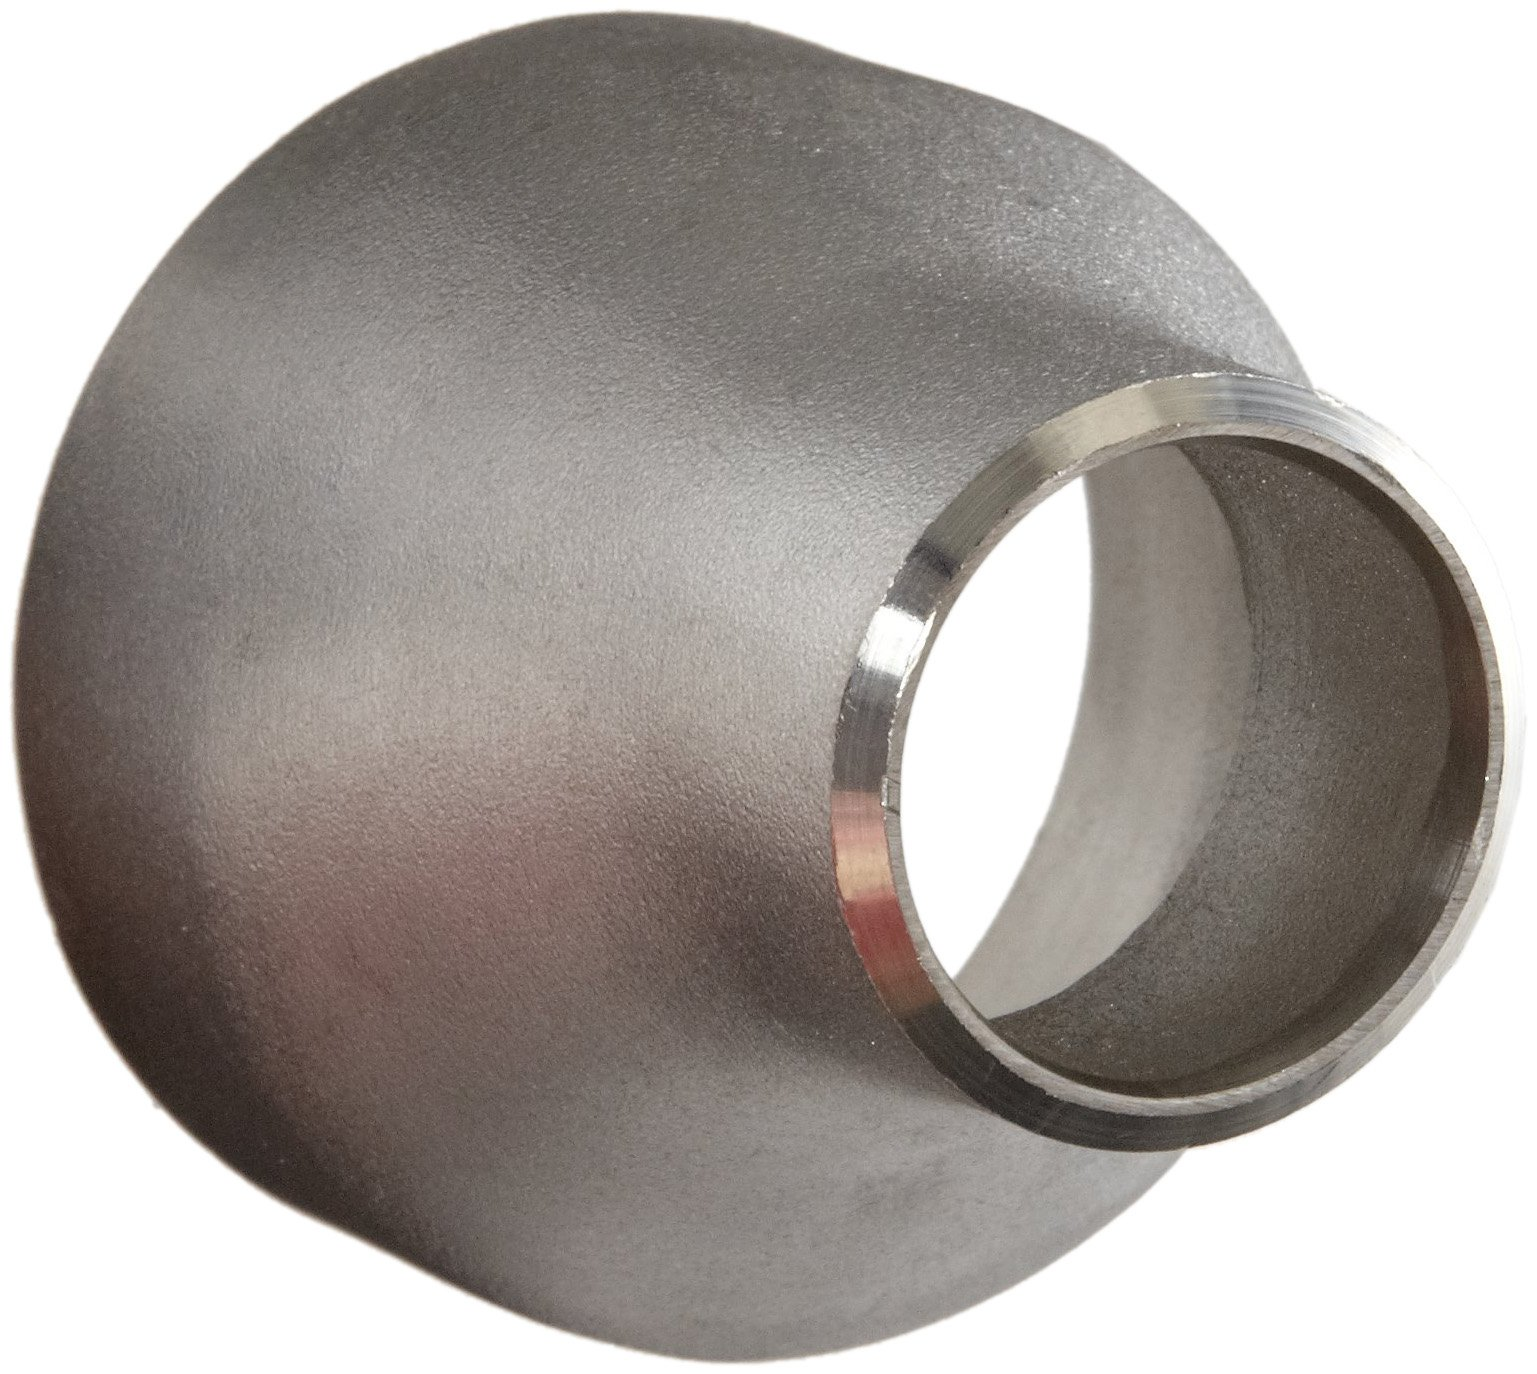 Stainless steel pipe fittings manufacturer supplier